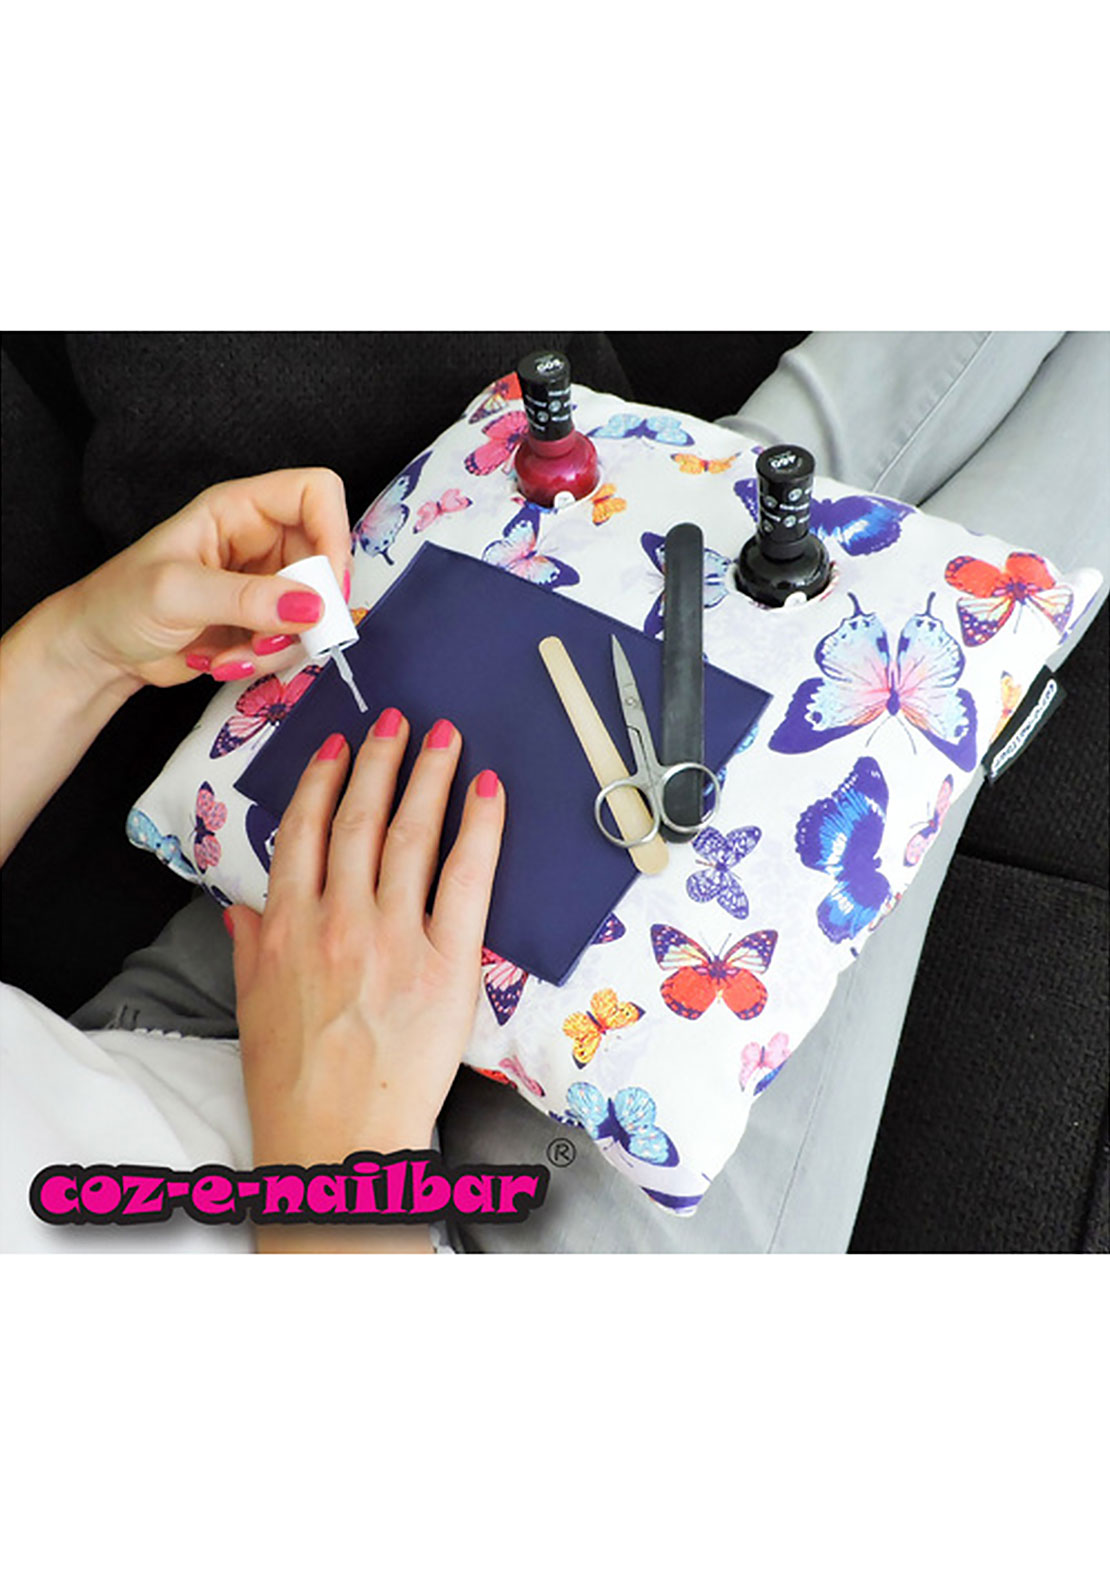 Coz-E-Nail bar Cushion, White, Pink & Purple